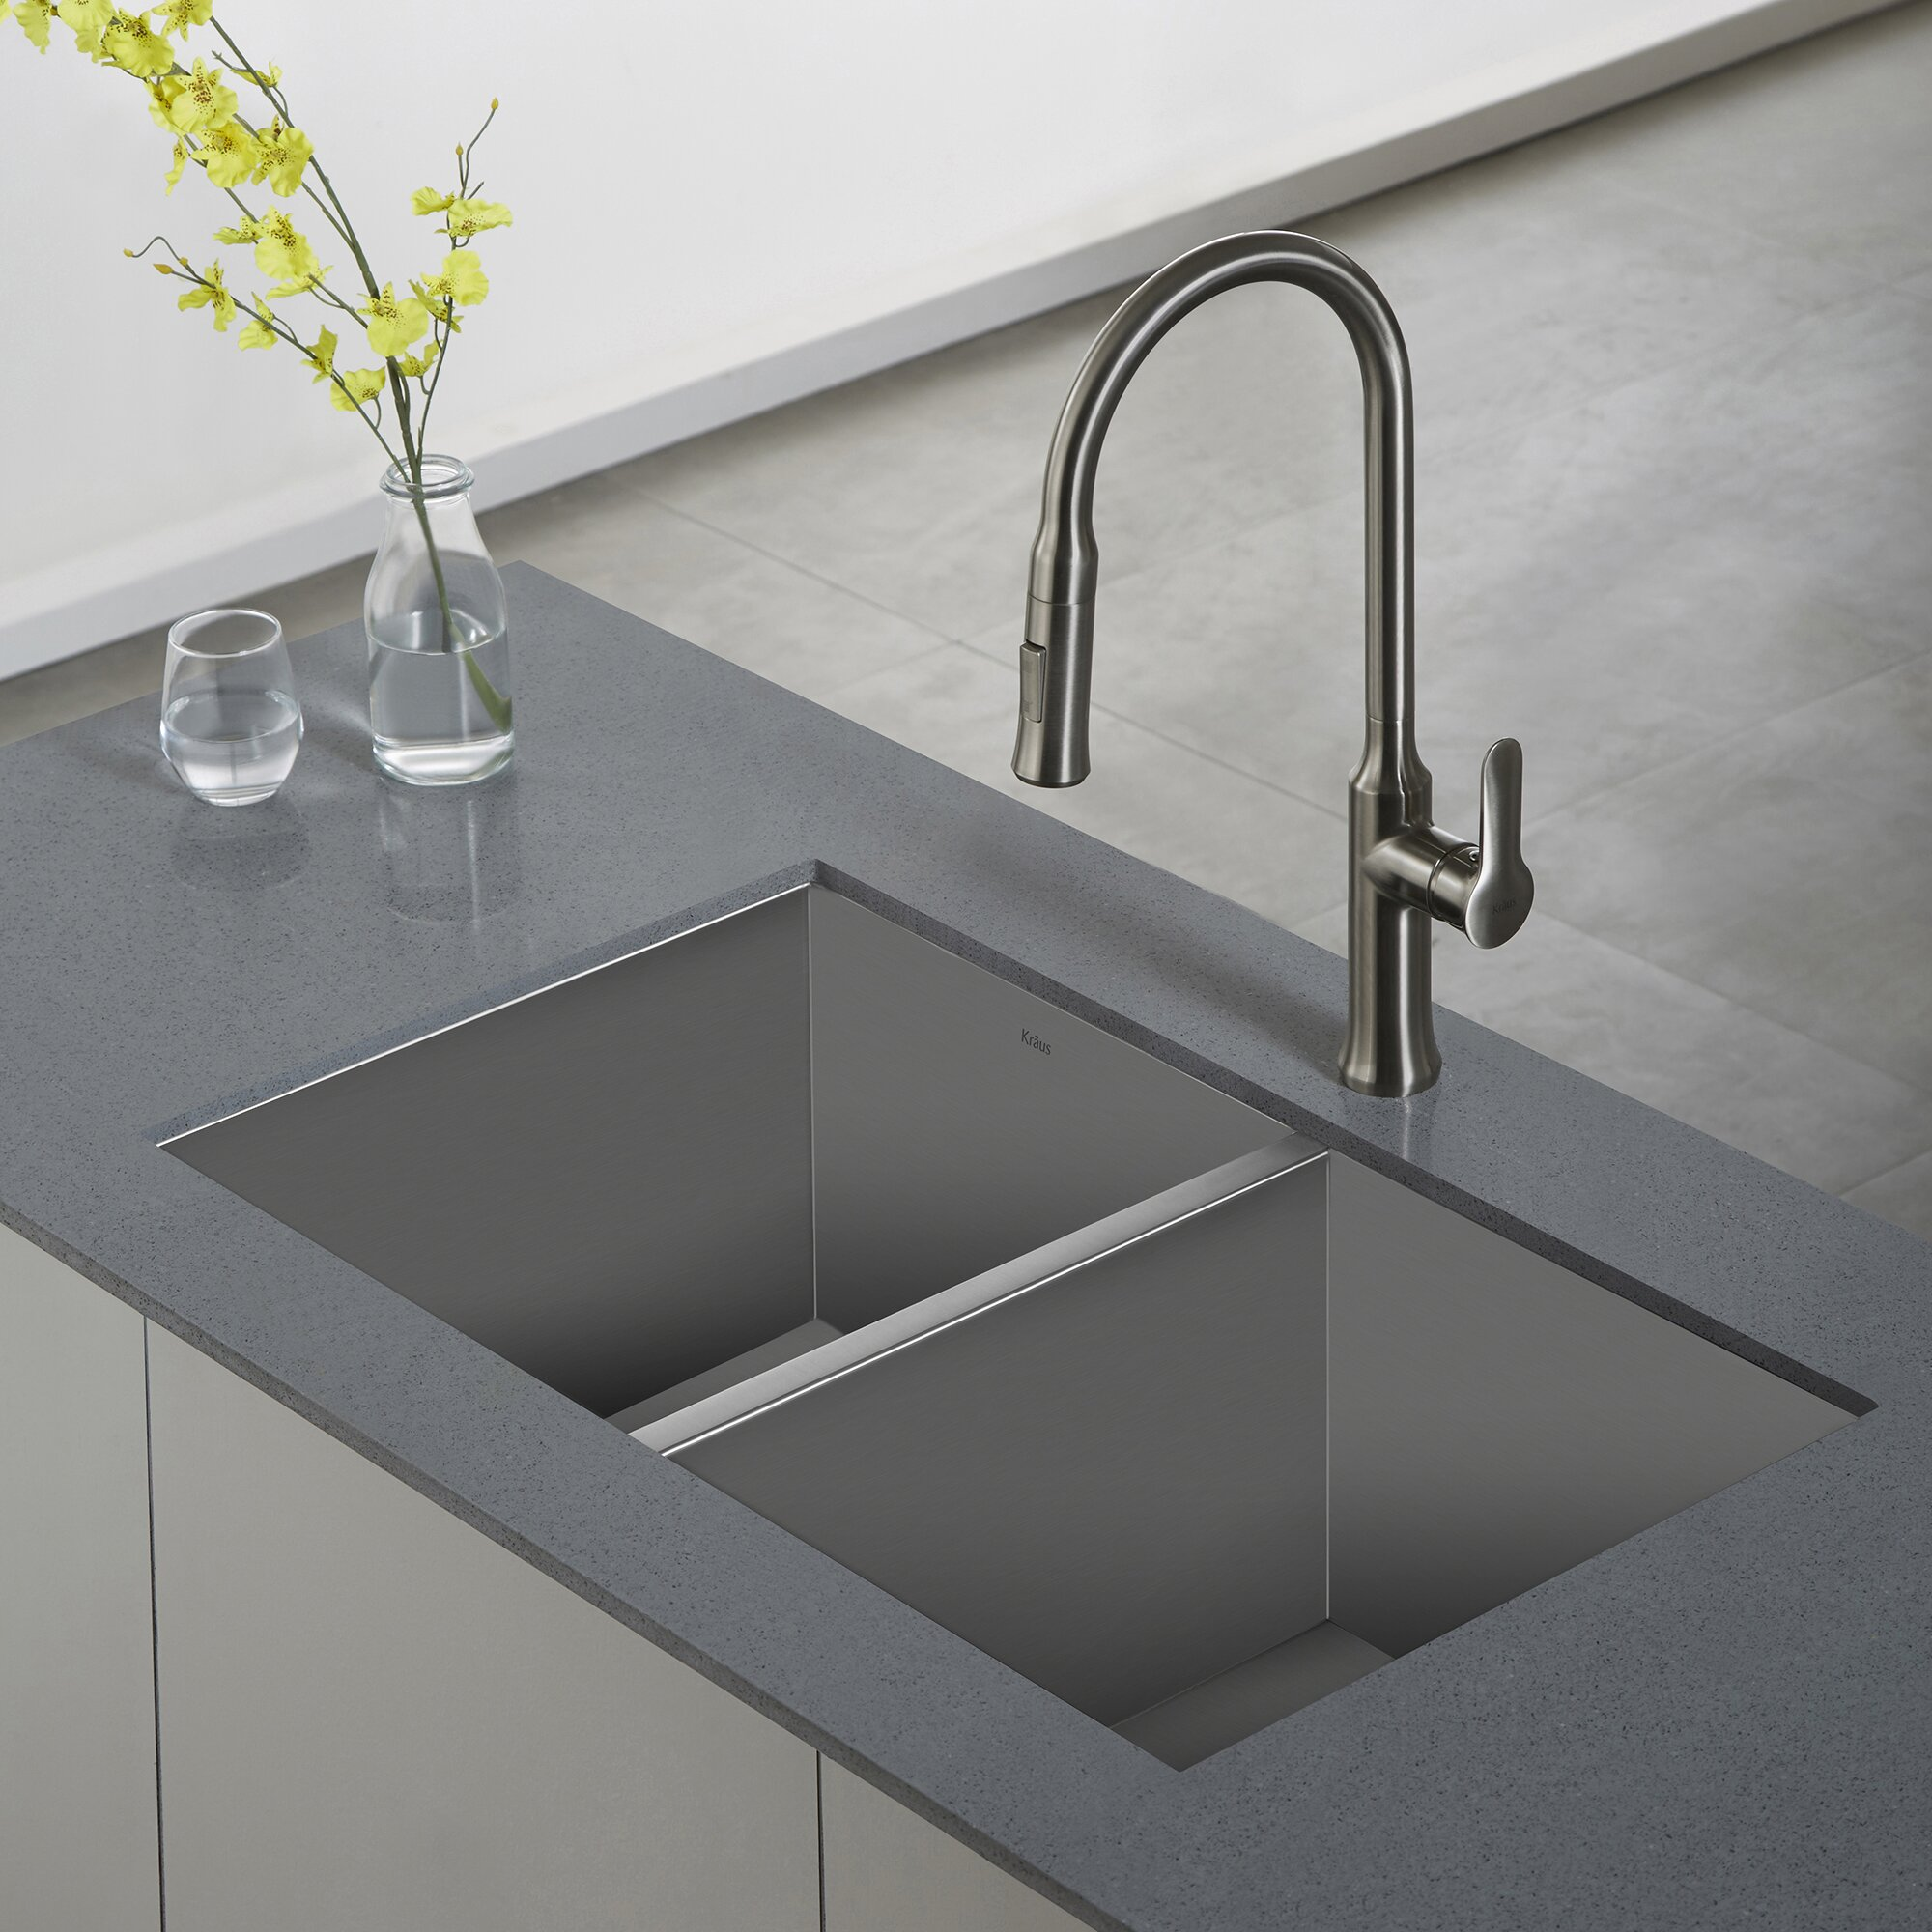 ... Handmade Undermount 50/50 Double Bowl Stainless Steel Kitchen Sink by